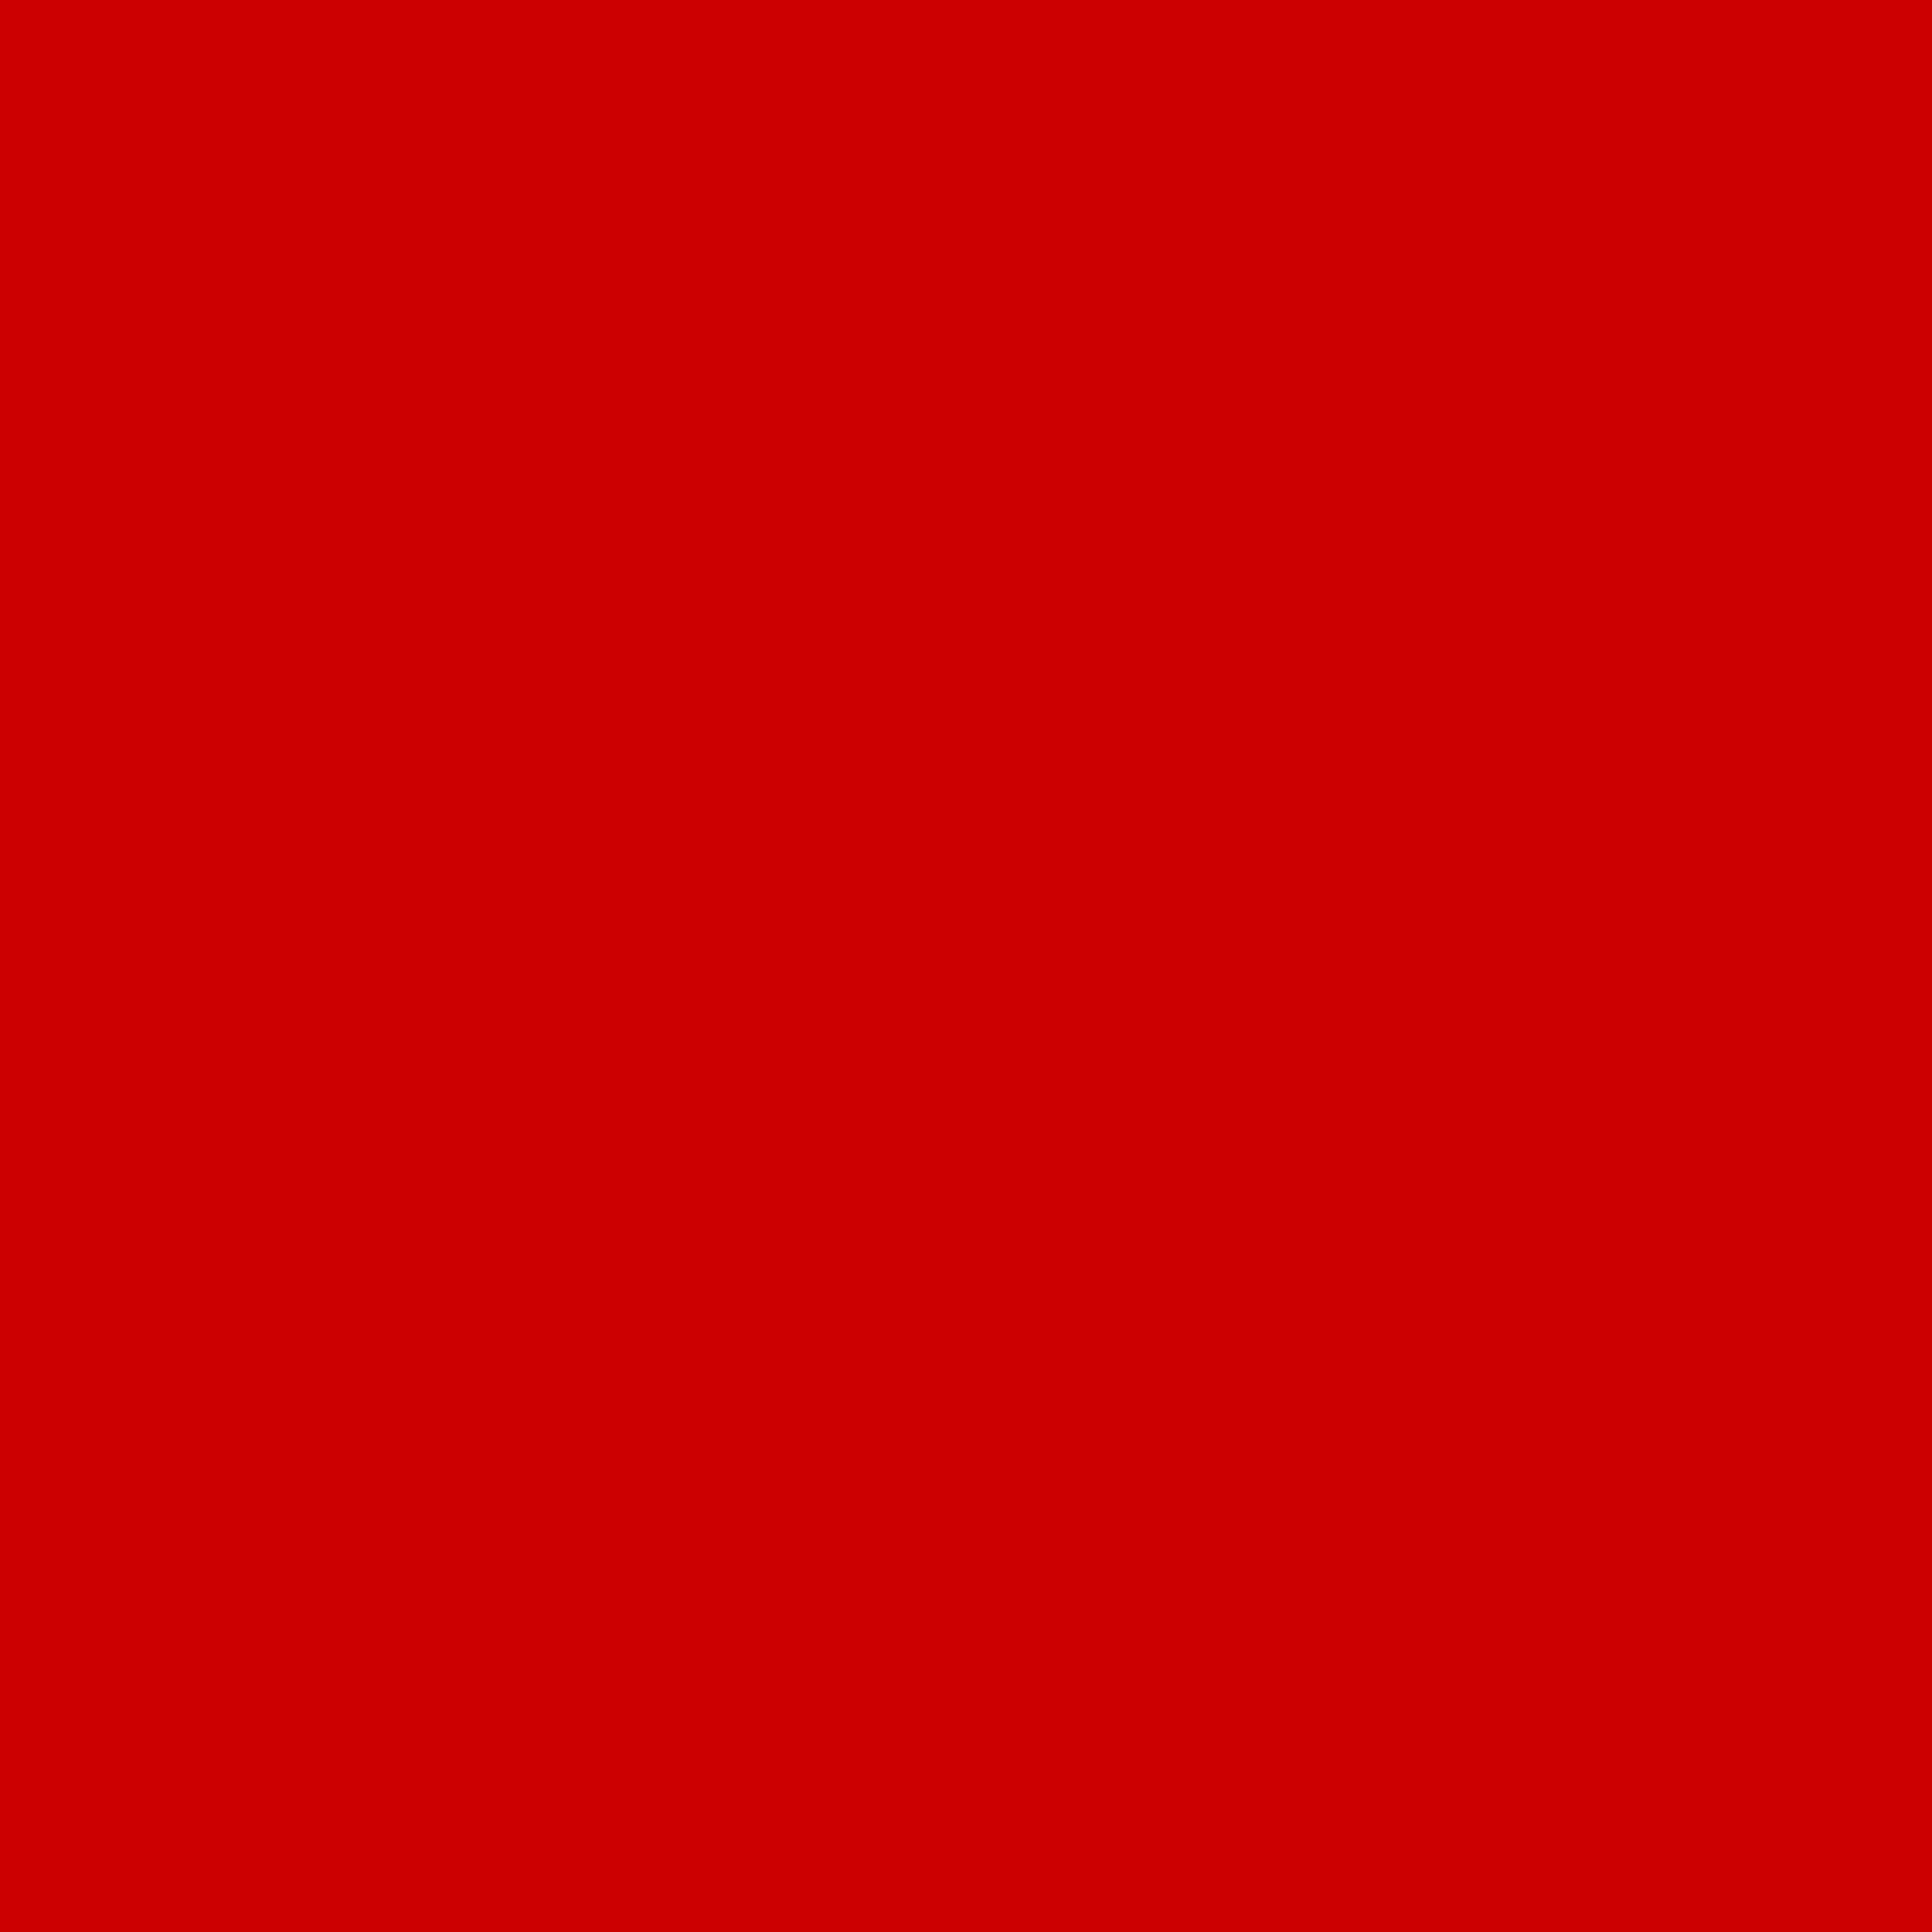 3600x3600 Boston University Red Solid Color Background